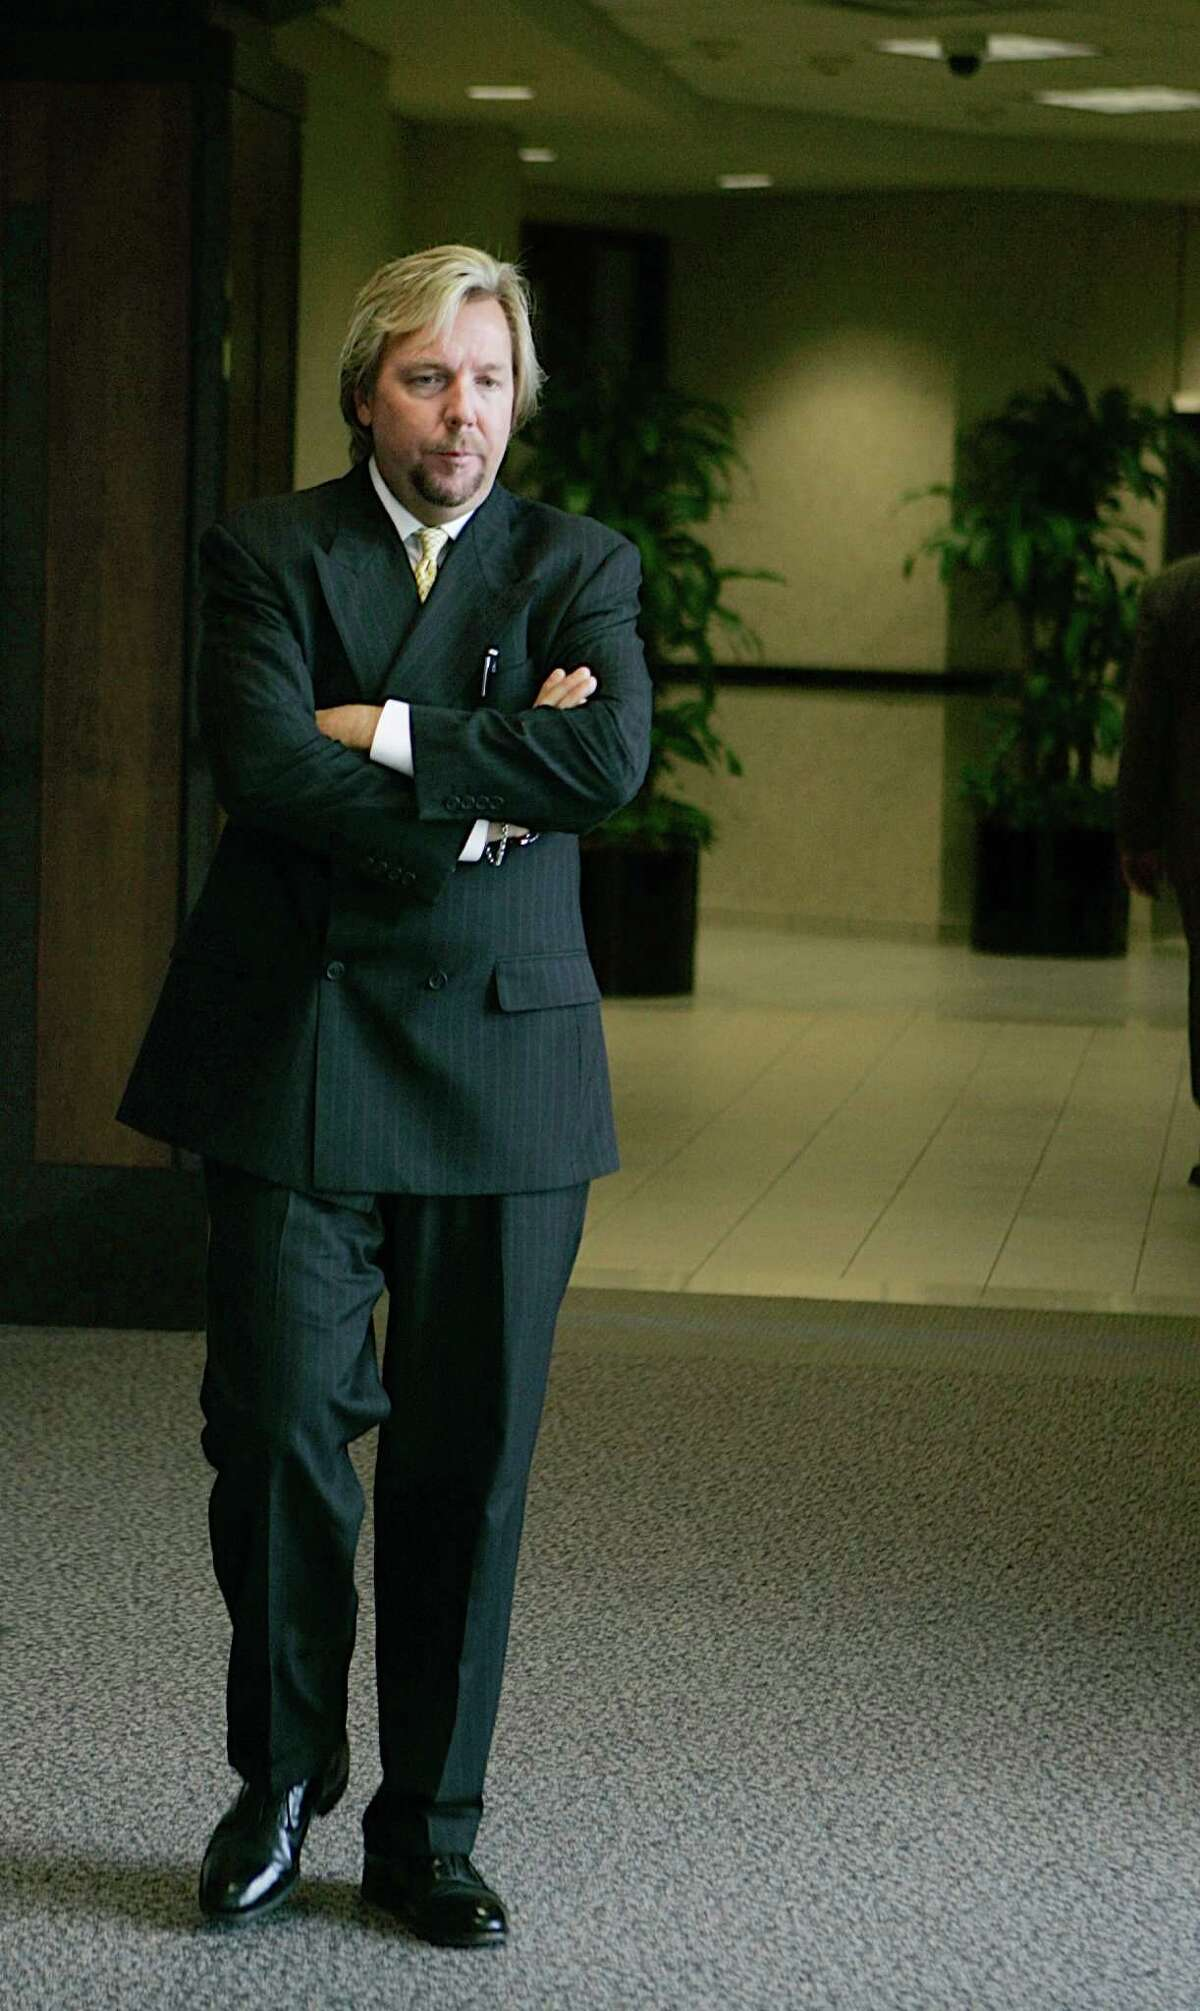 Plaintiffs attorney Brent Coon takes a break outside the Galveston, Texas courtroom Monday, Sept. 10, 2007 during first civil trial stemming from the March 2005 explosion that killed 15 people and injured more than 170 others at BP's Texas City refinery. (AP Photo/Pat Sullivan)